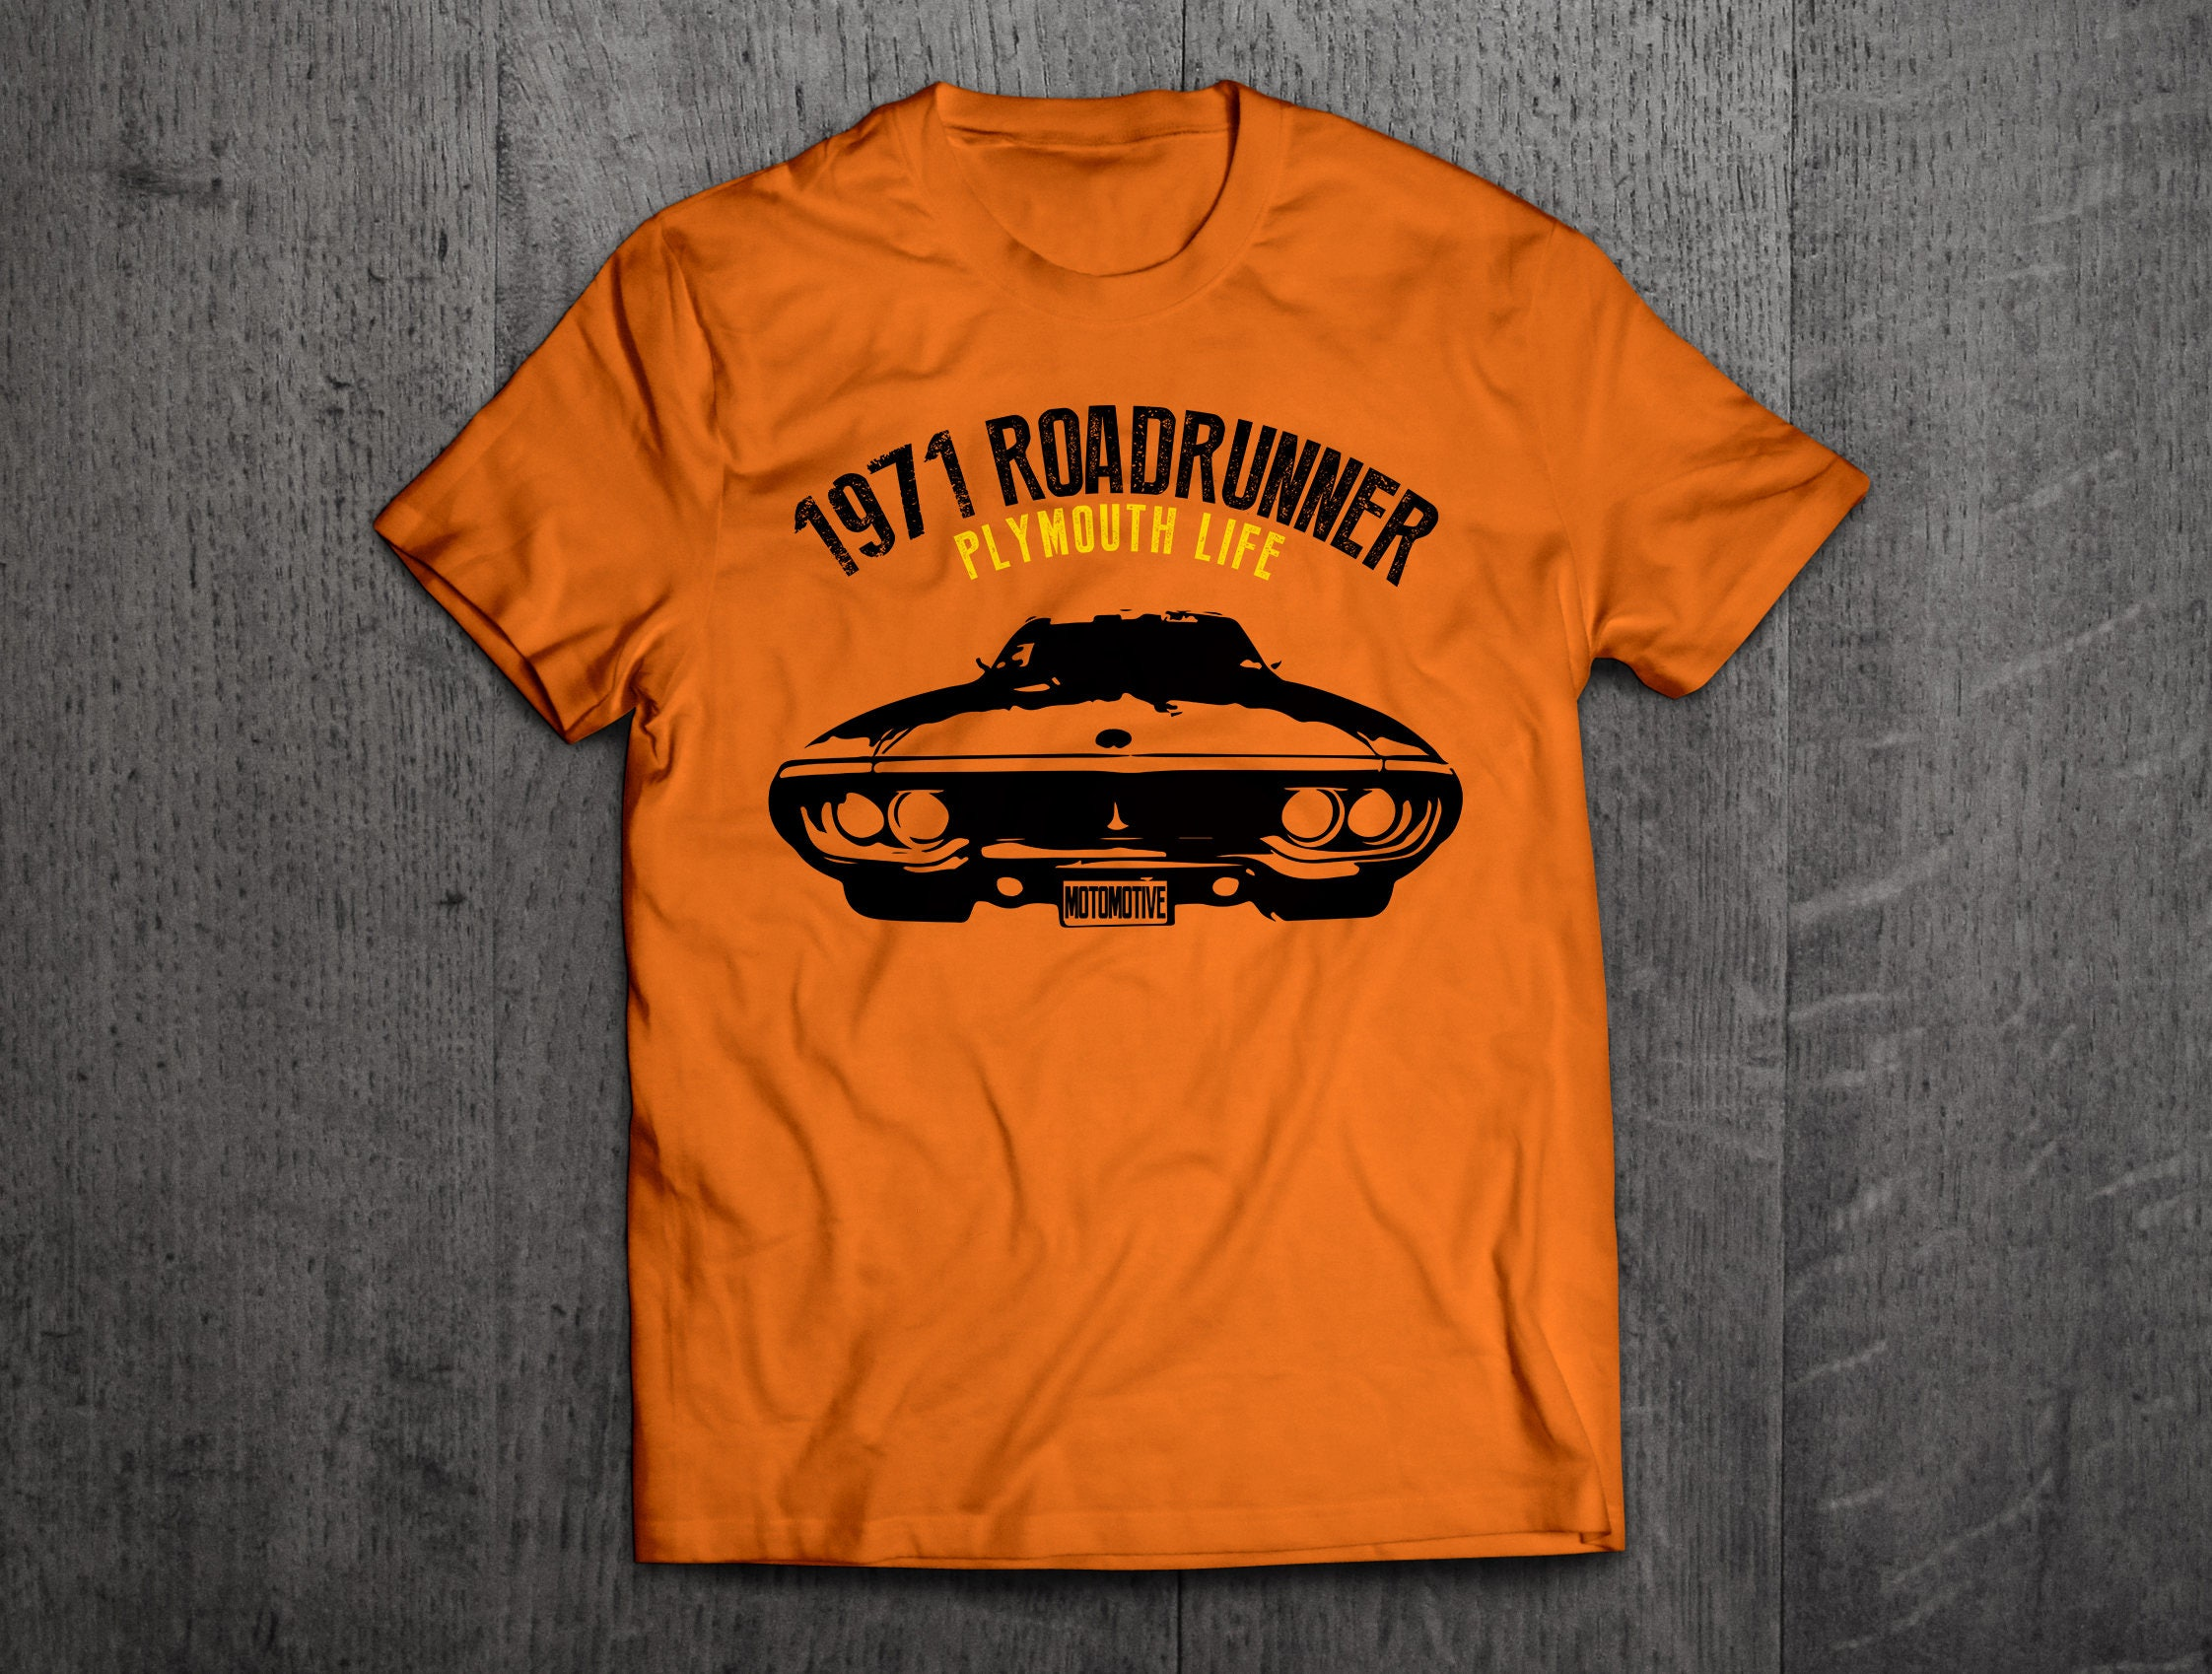 plymouth roadrunner shirts road runner t shirts cars t. Black Bedroom Furniture Sets. Home Design Ideas